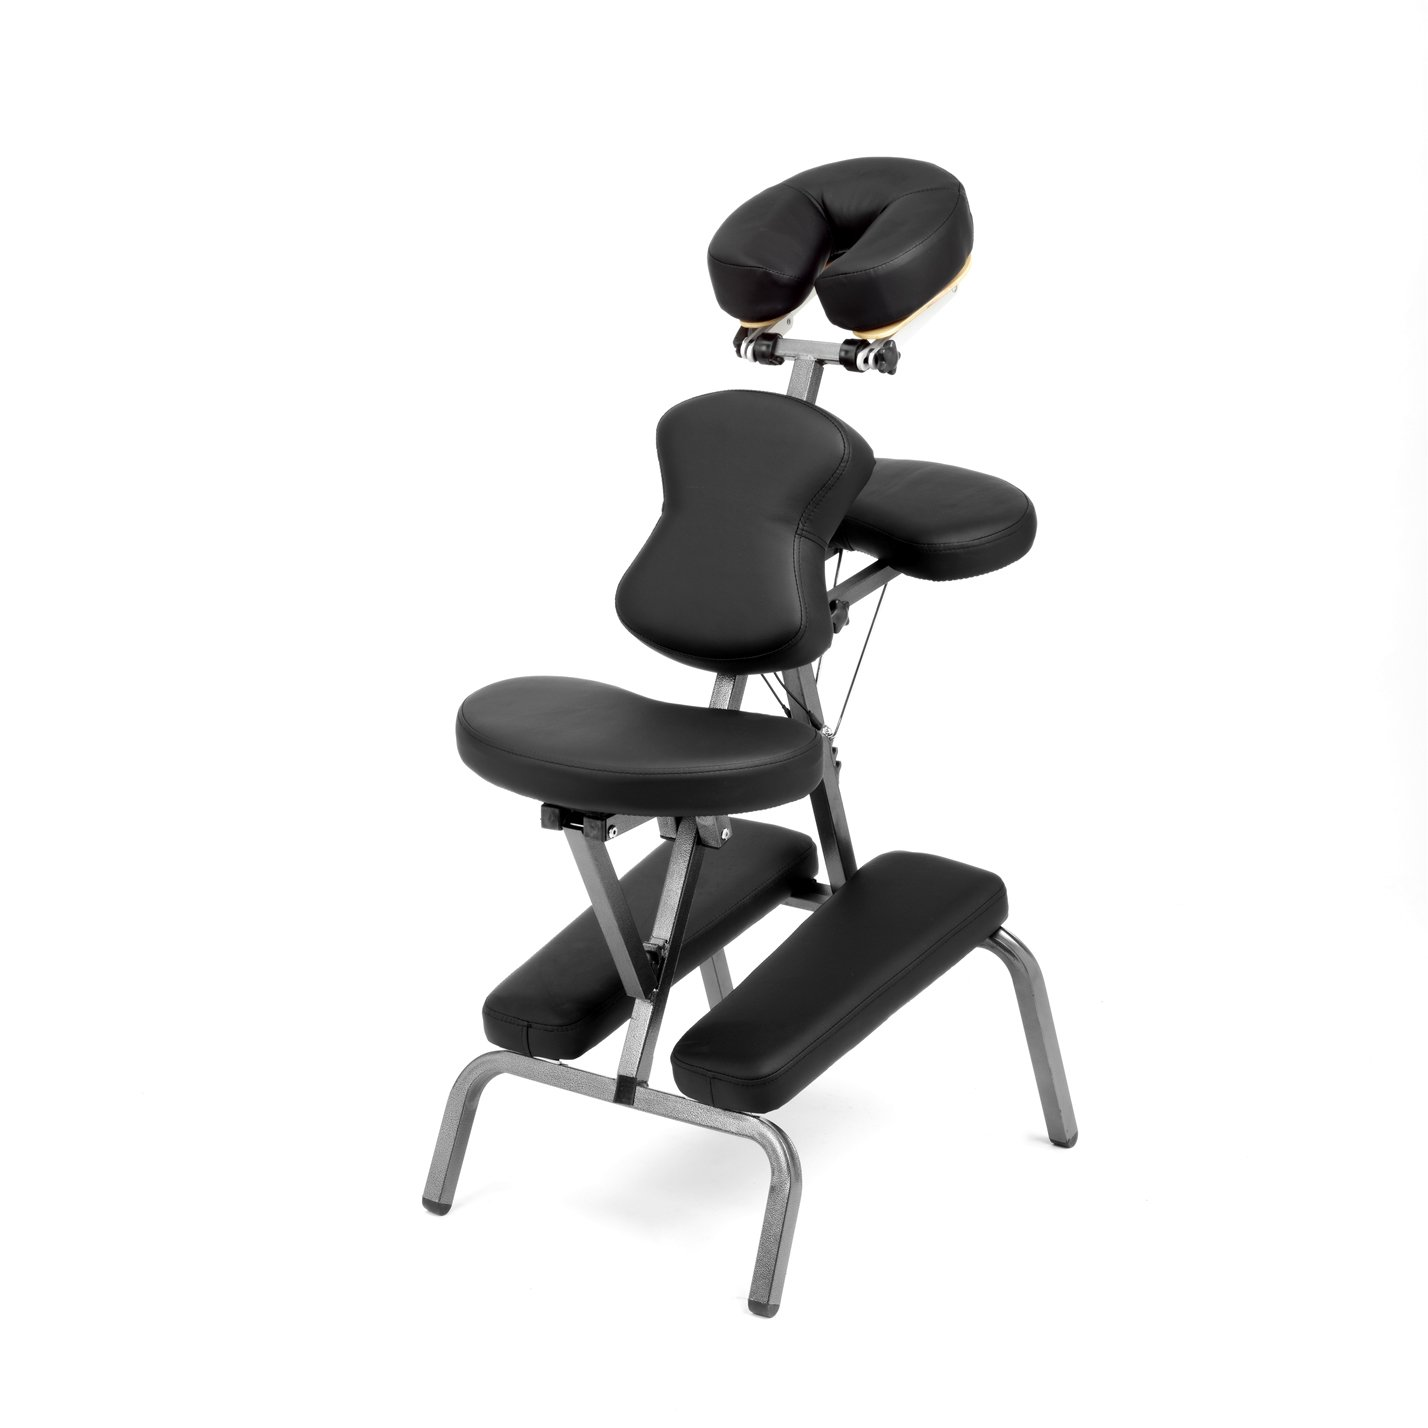 Portable Massage Chair Indian Head Therapy